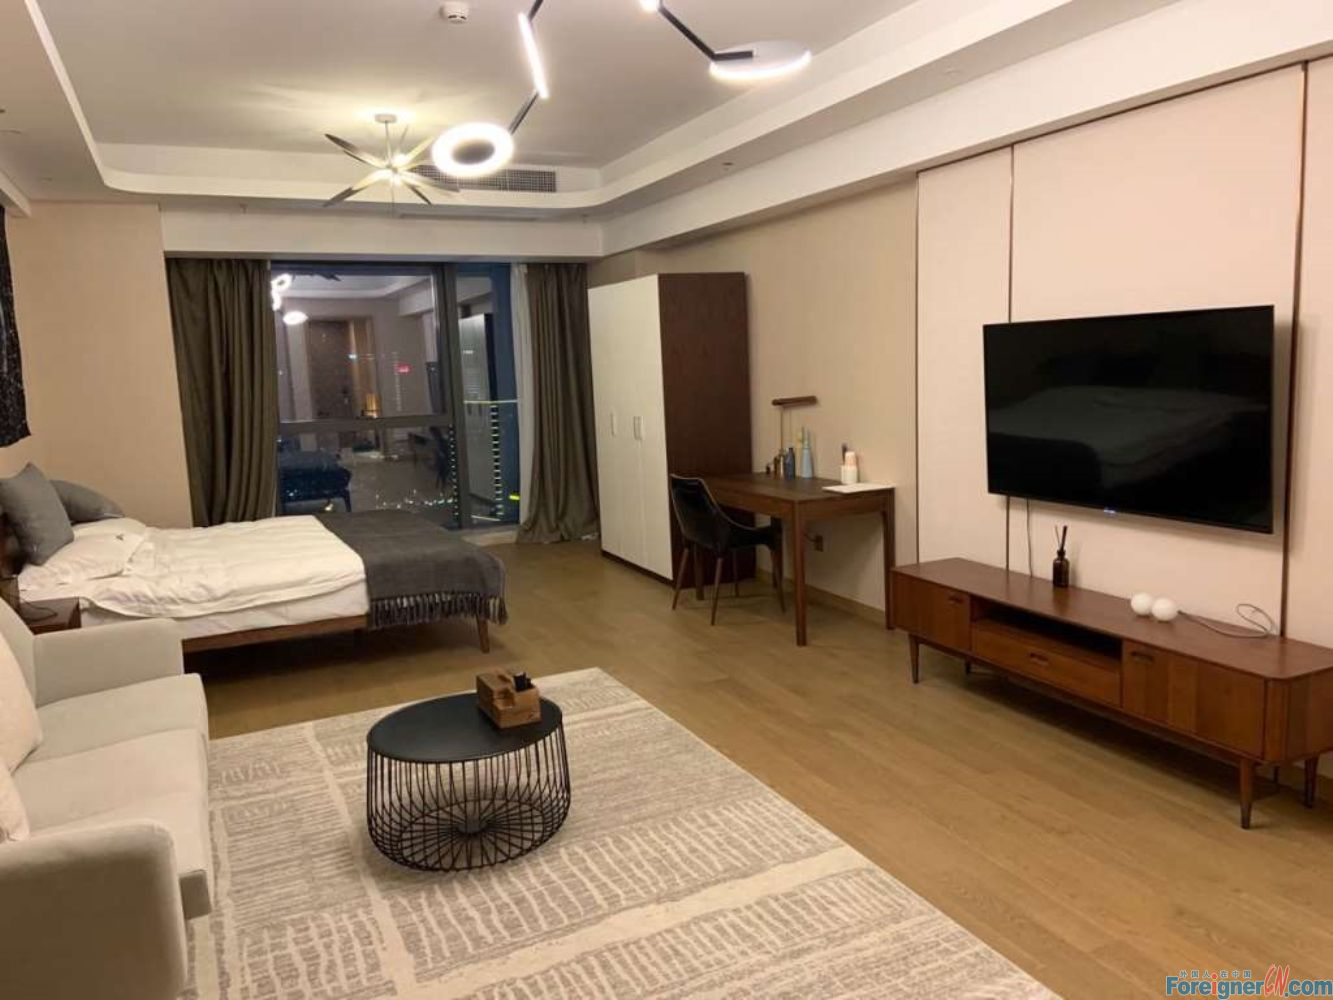 Where to live in Suzhou–floor heating–central AC-cozy decoration-near metro-brand new-convenient life